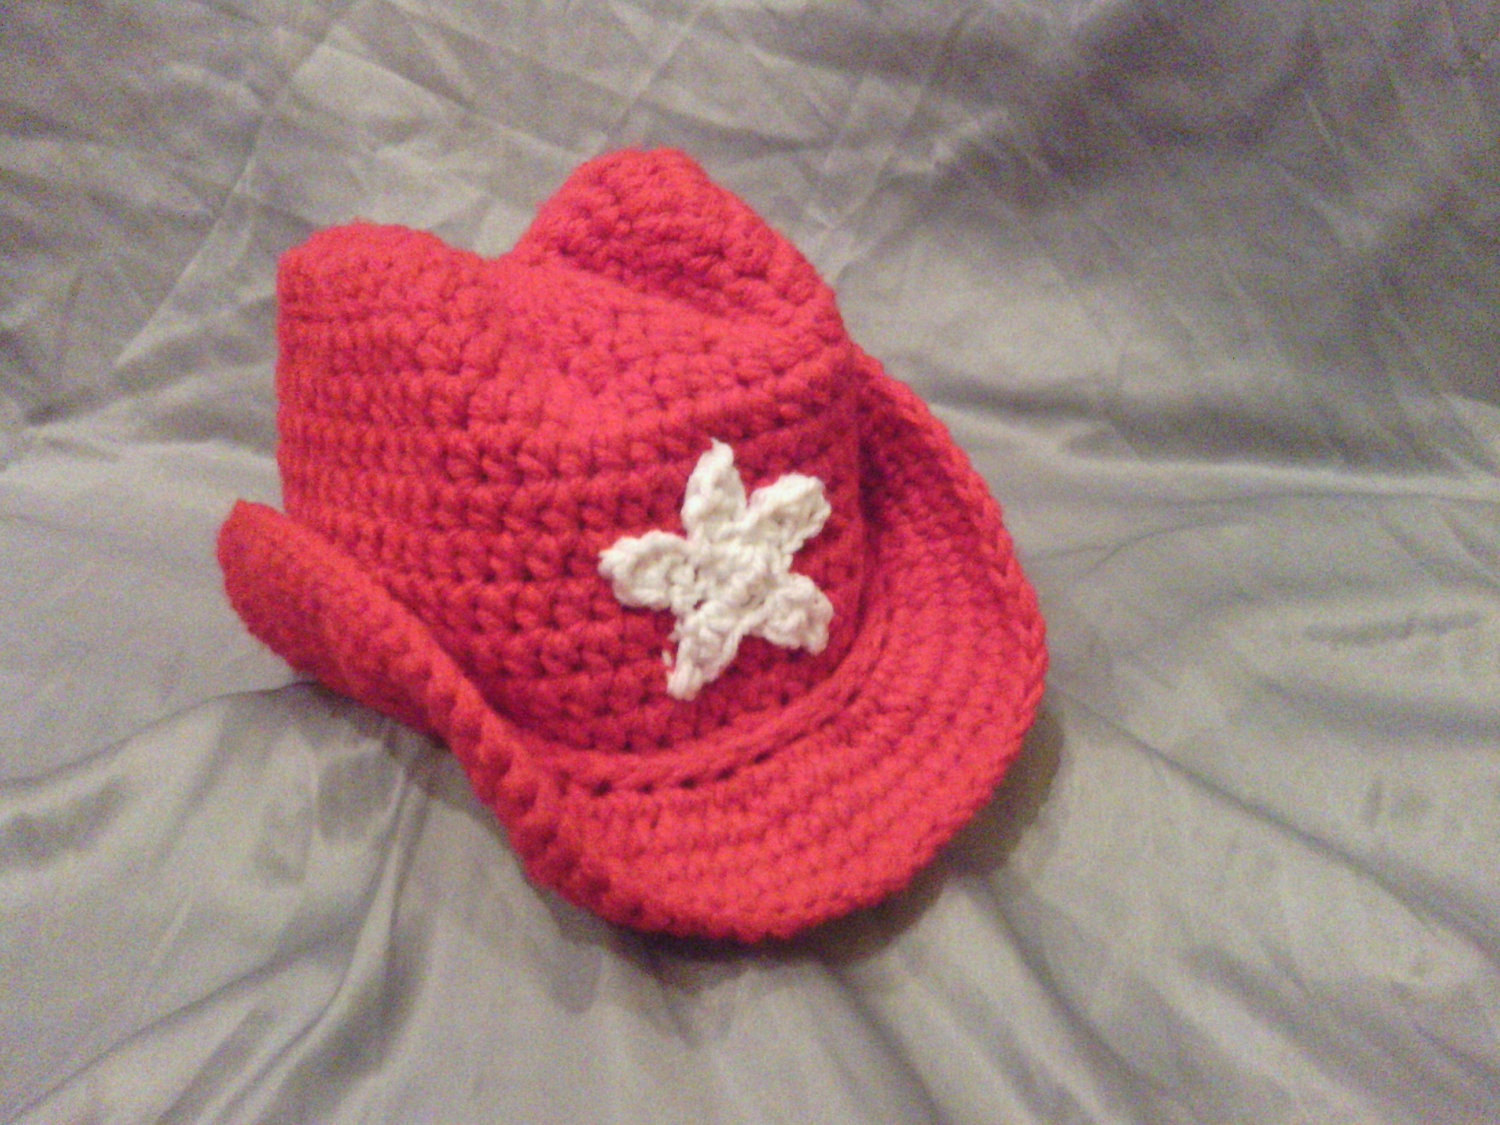 Crochet Cowboy Hat Pattern For Toddler : Crochet Cowboy Toddler Hat with a Star